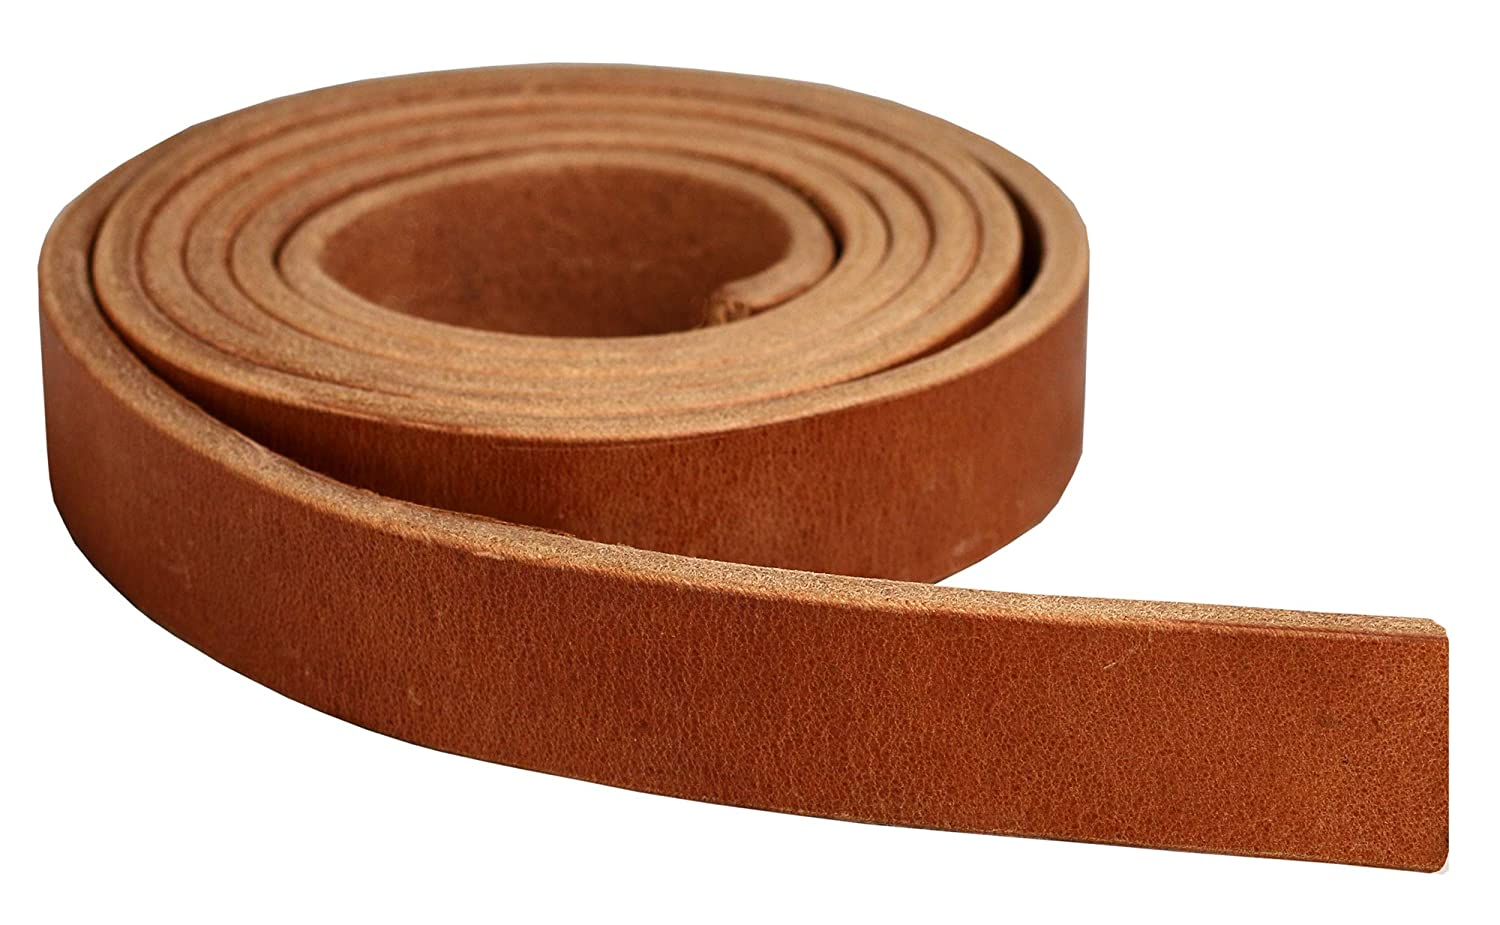 Great for Tack Repair Premium Hermann Oak Harness Leather Blank Strap 13 Ounce Weight 1.25 x 84 13//64 or 5.2 MM Thickness Natural Russet Color 100/% Leather Strip Fully Finished /& Leveled